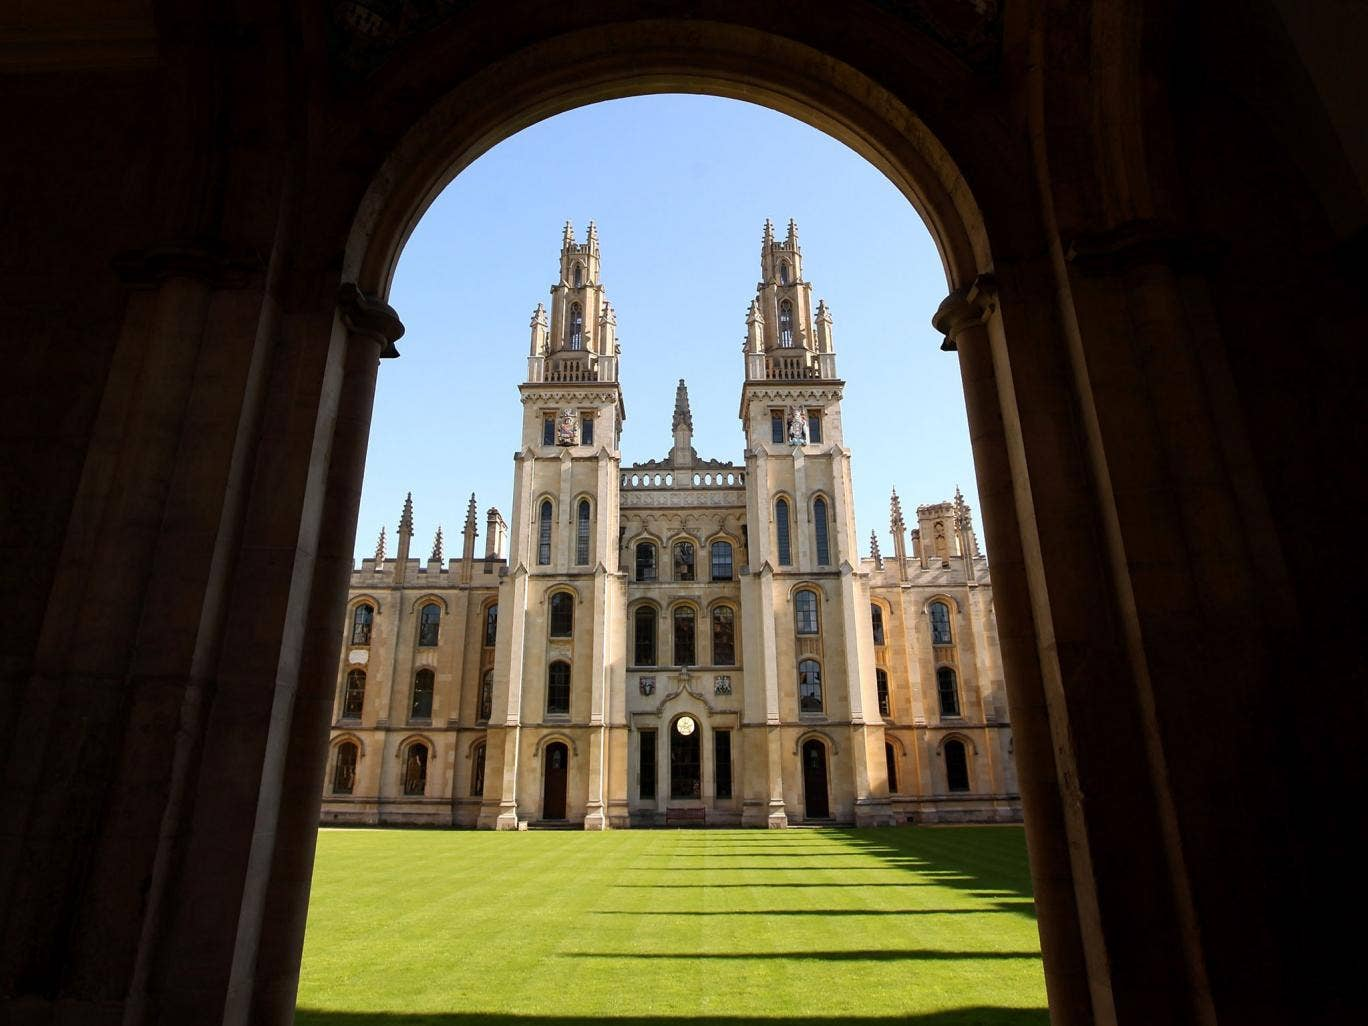 All Souls College in Oxford University, one of the members of the Russell Group